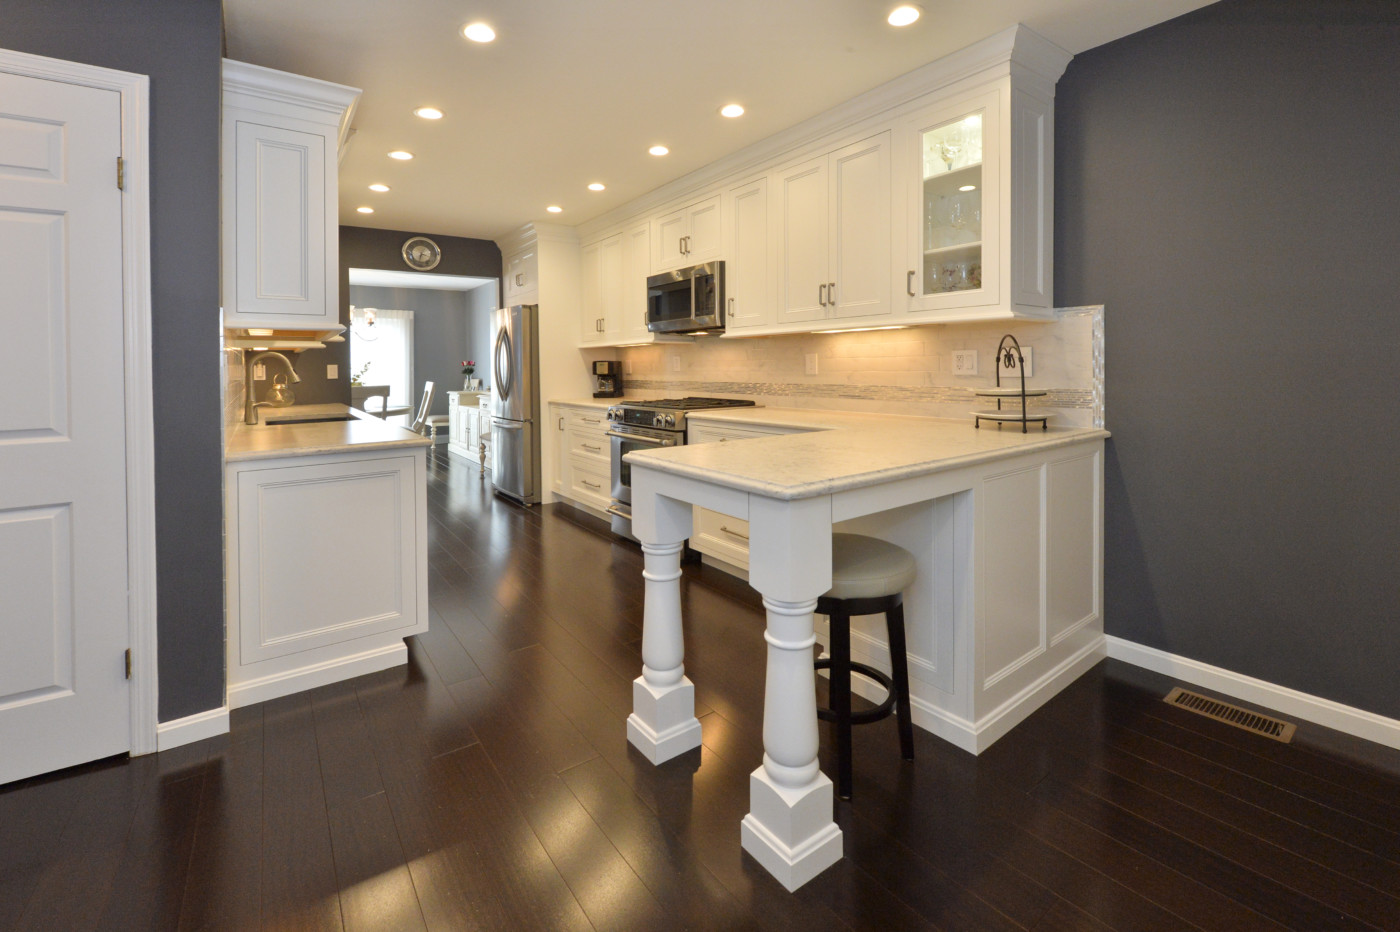 Kitchen cabinets emerson nj - Kuiken Brothers Kitchen Cabinetry Project In Hunterdon County New Jersey Kuiken Brothers